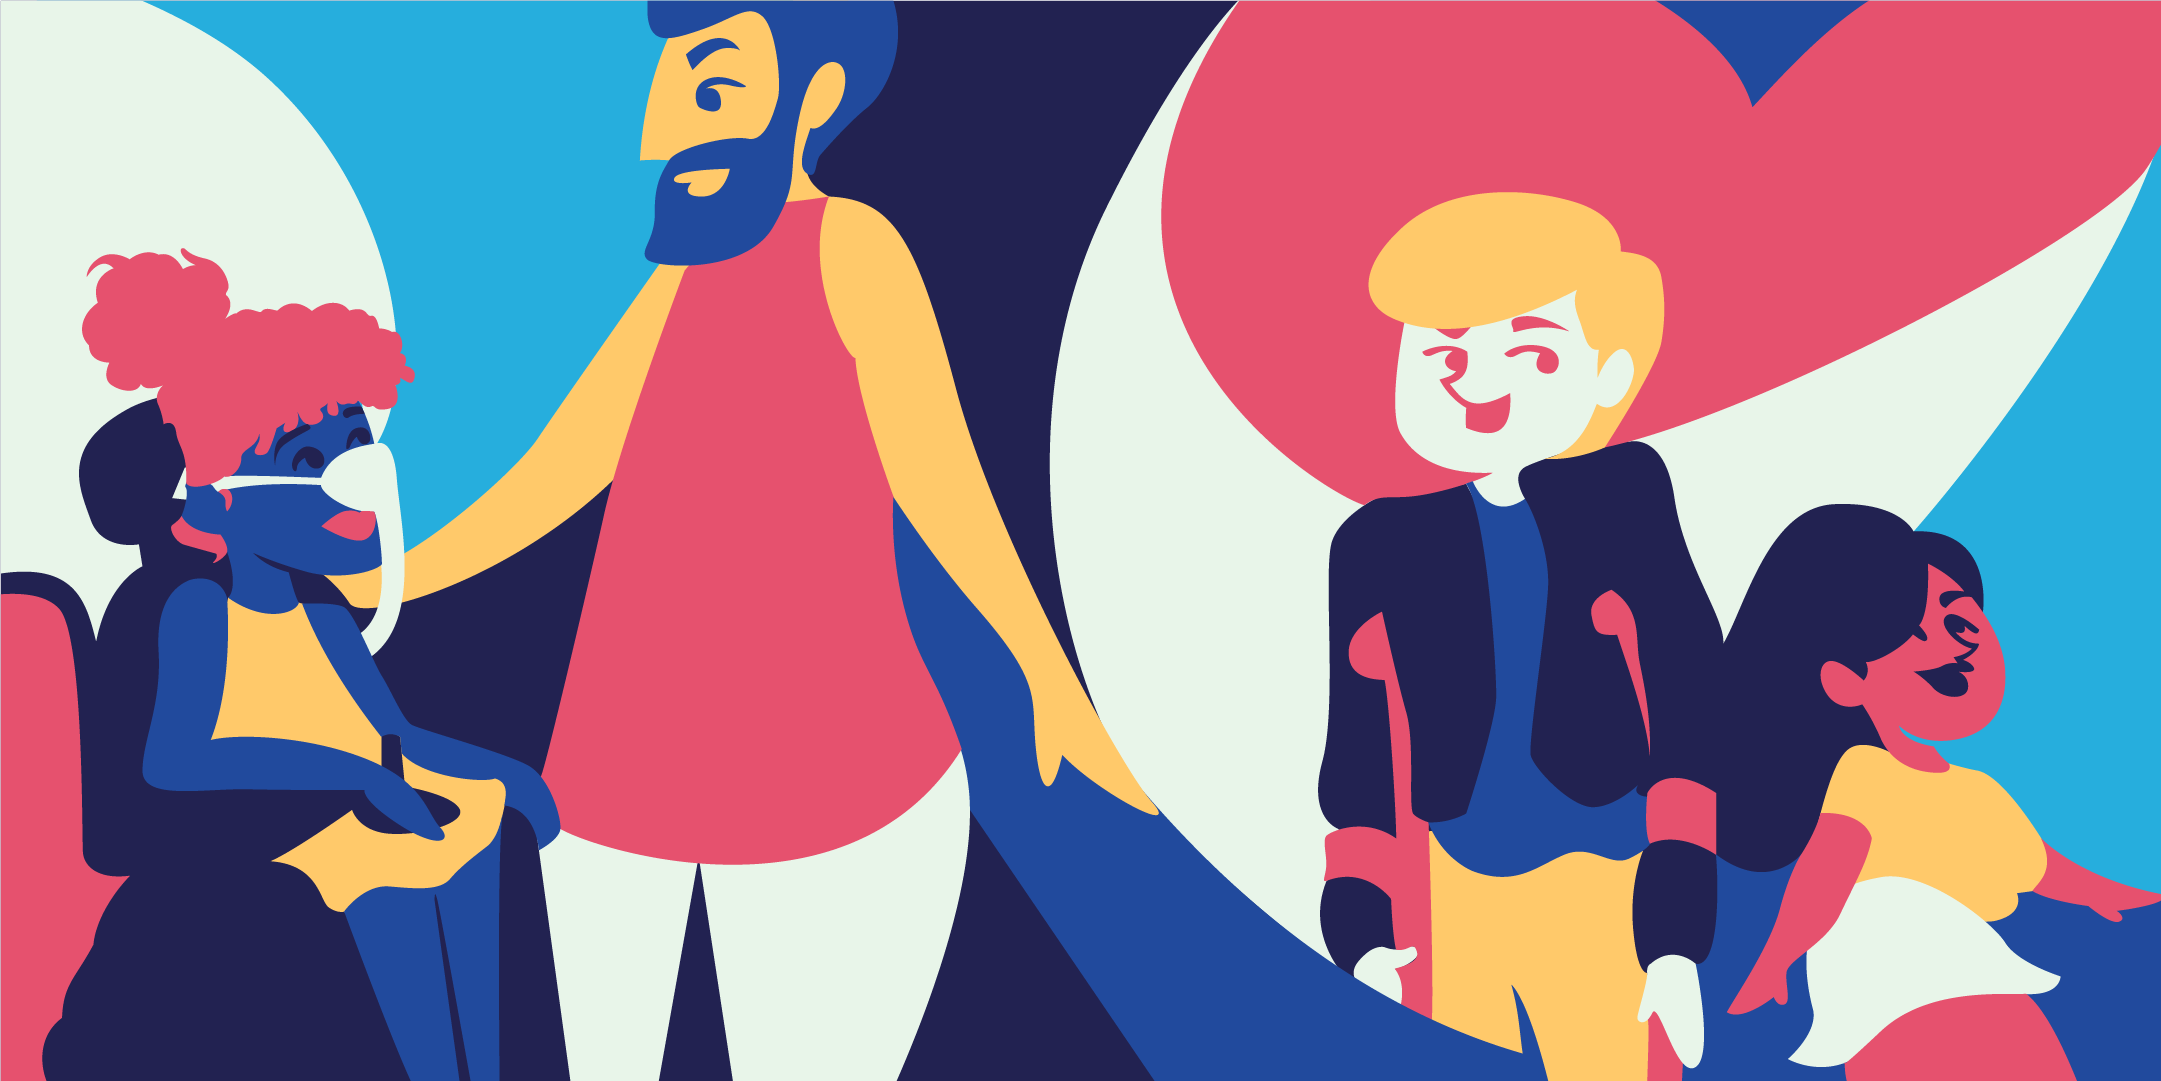 A colourful illustration of people with disabilities.